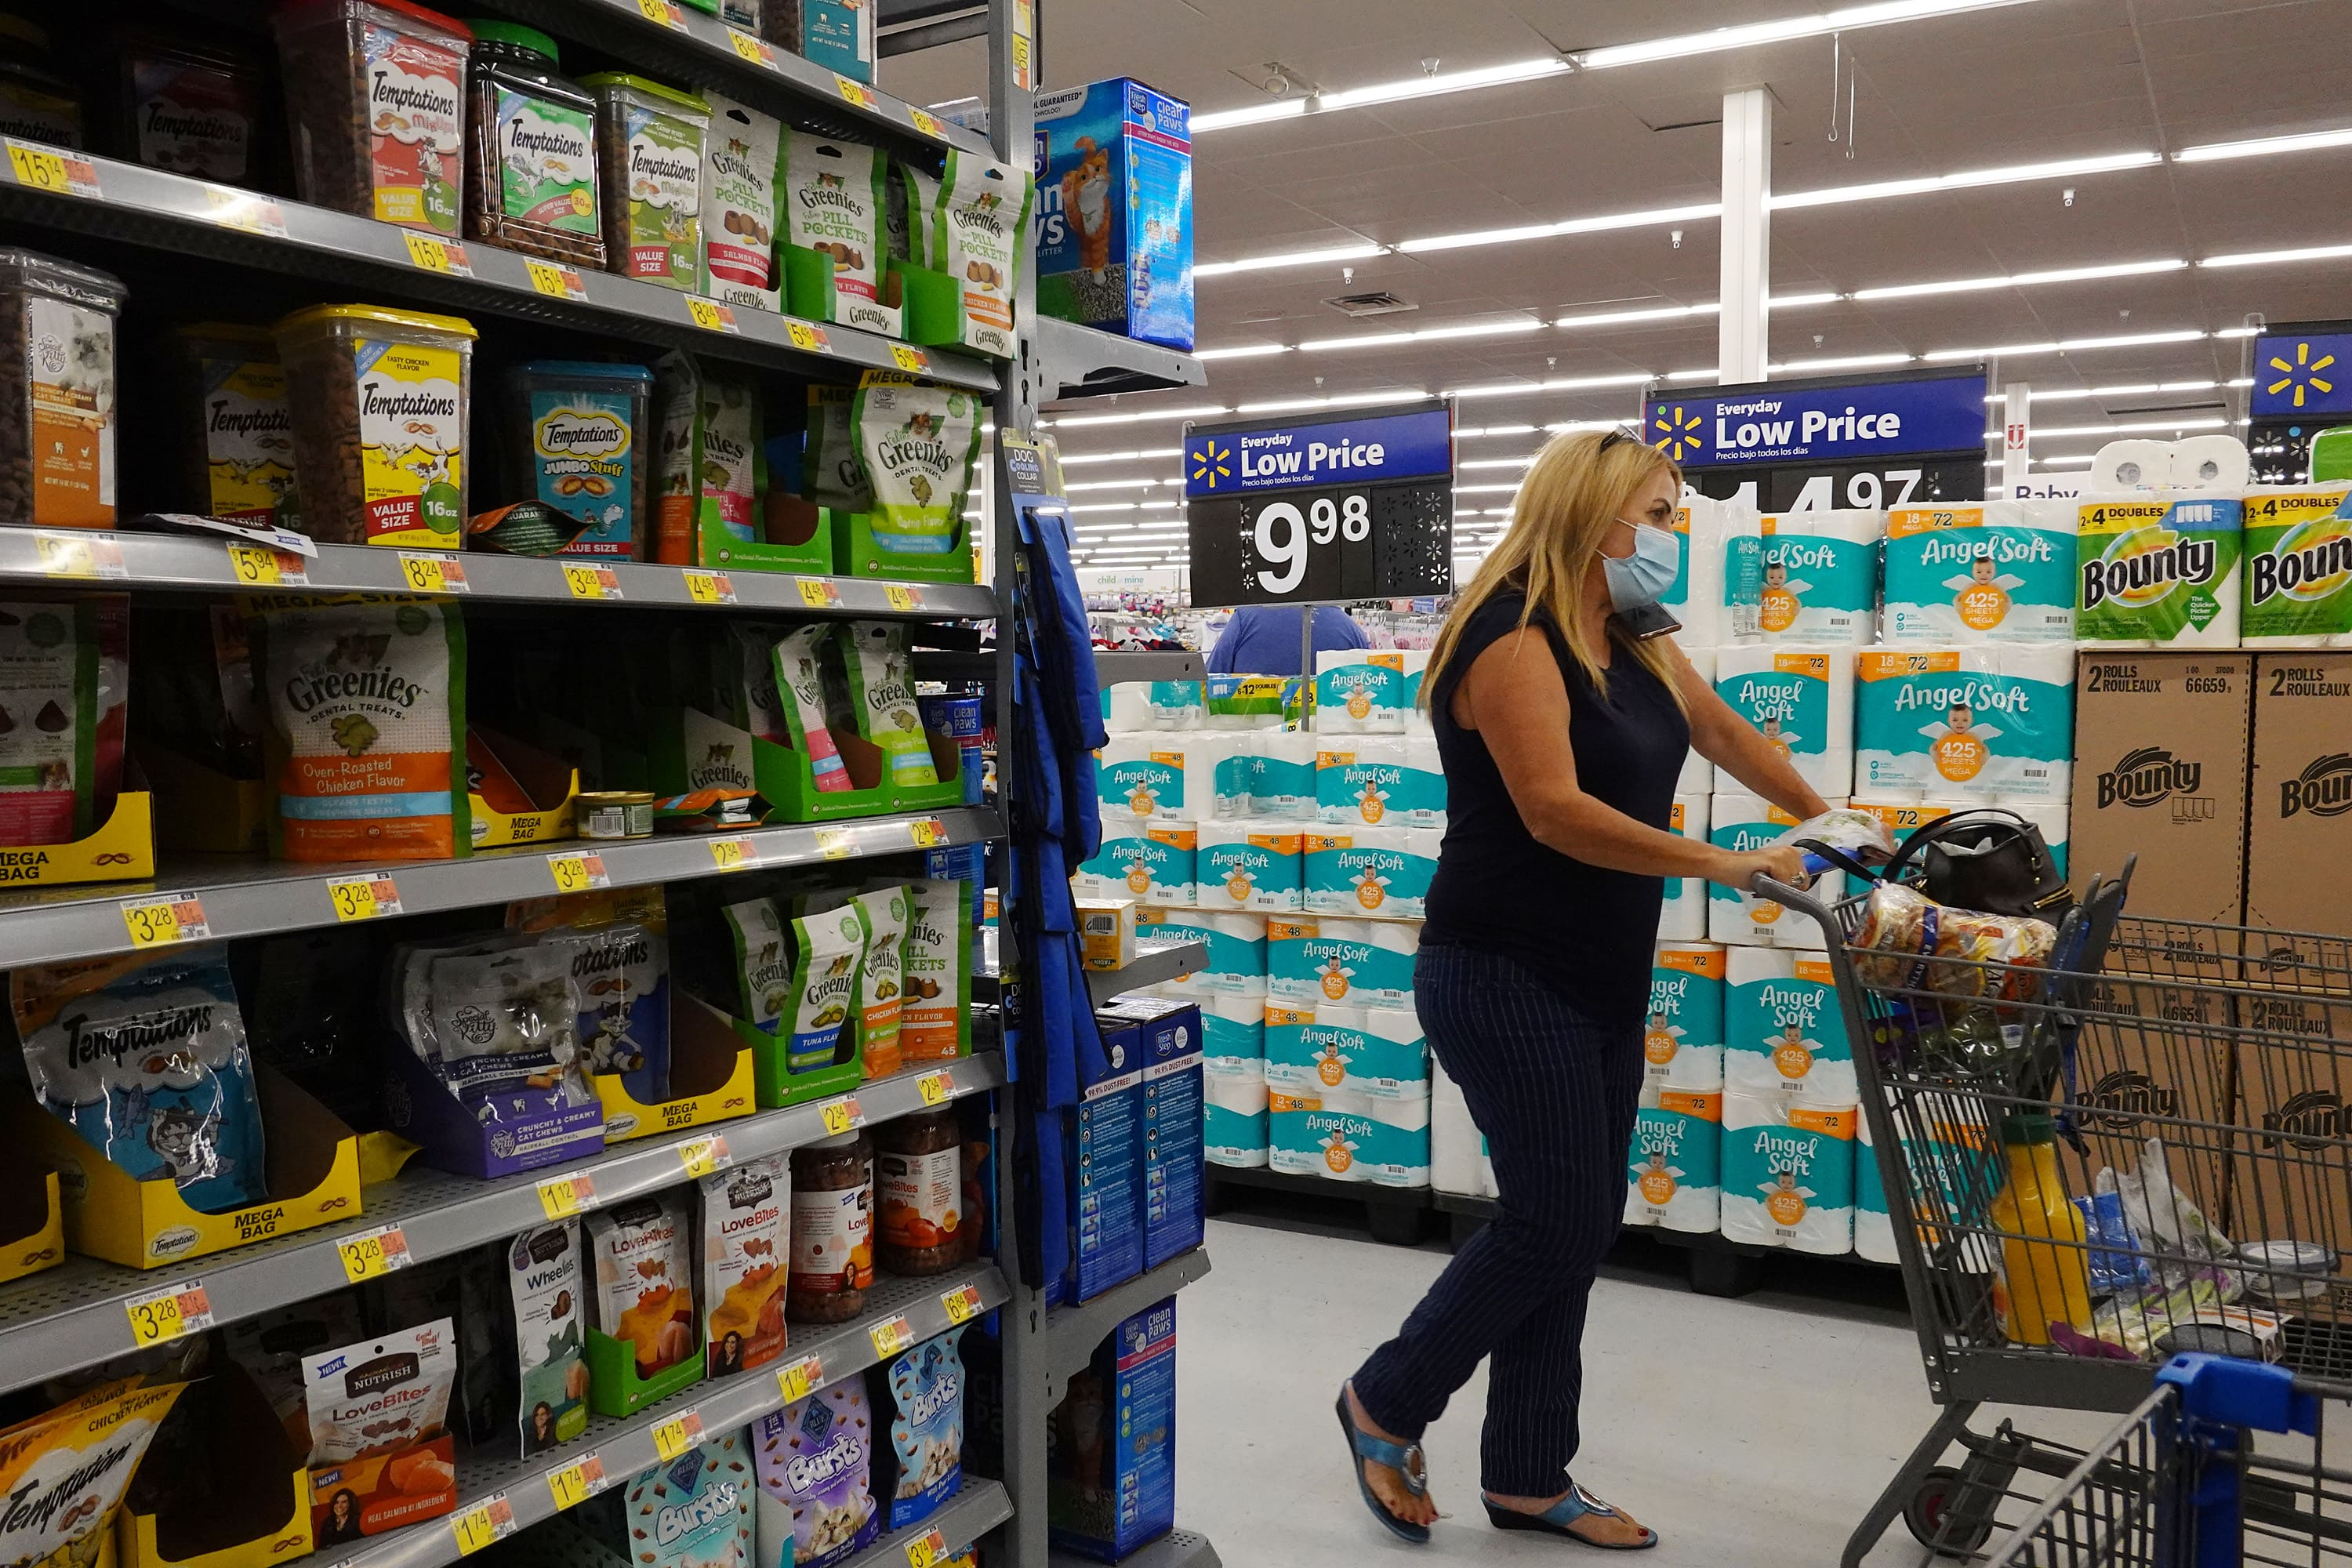 Walmart earnings top estimates, fueled by strong grocery sales and back-to-school spending